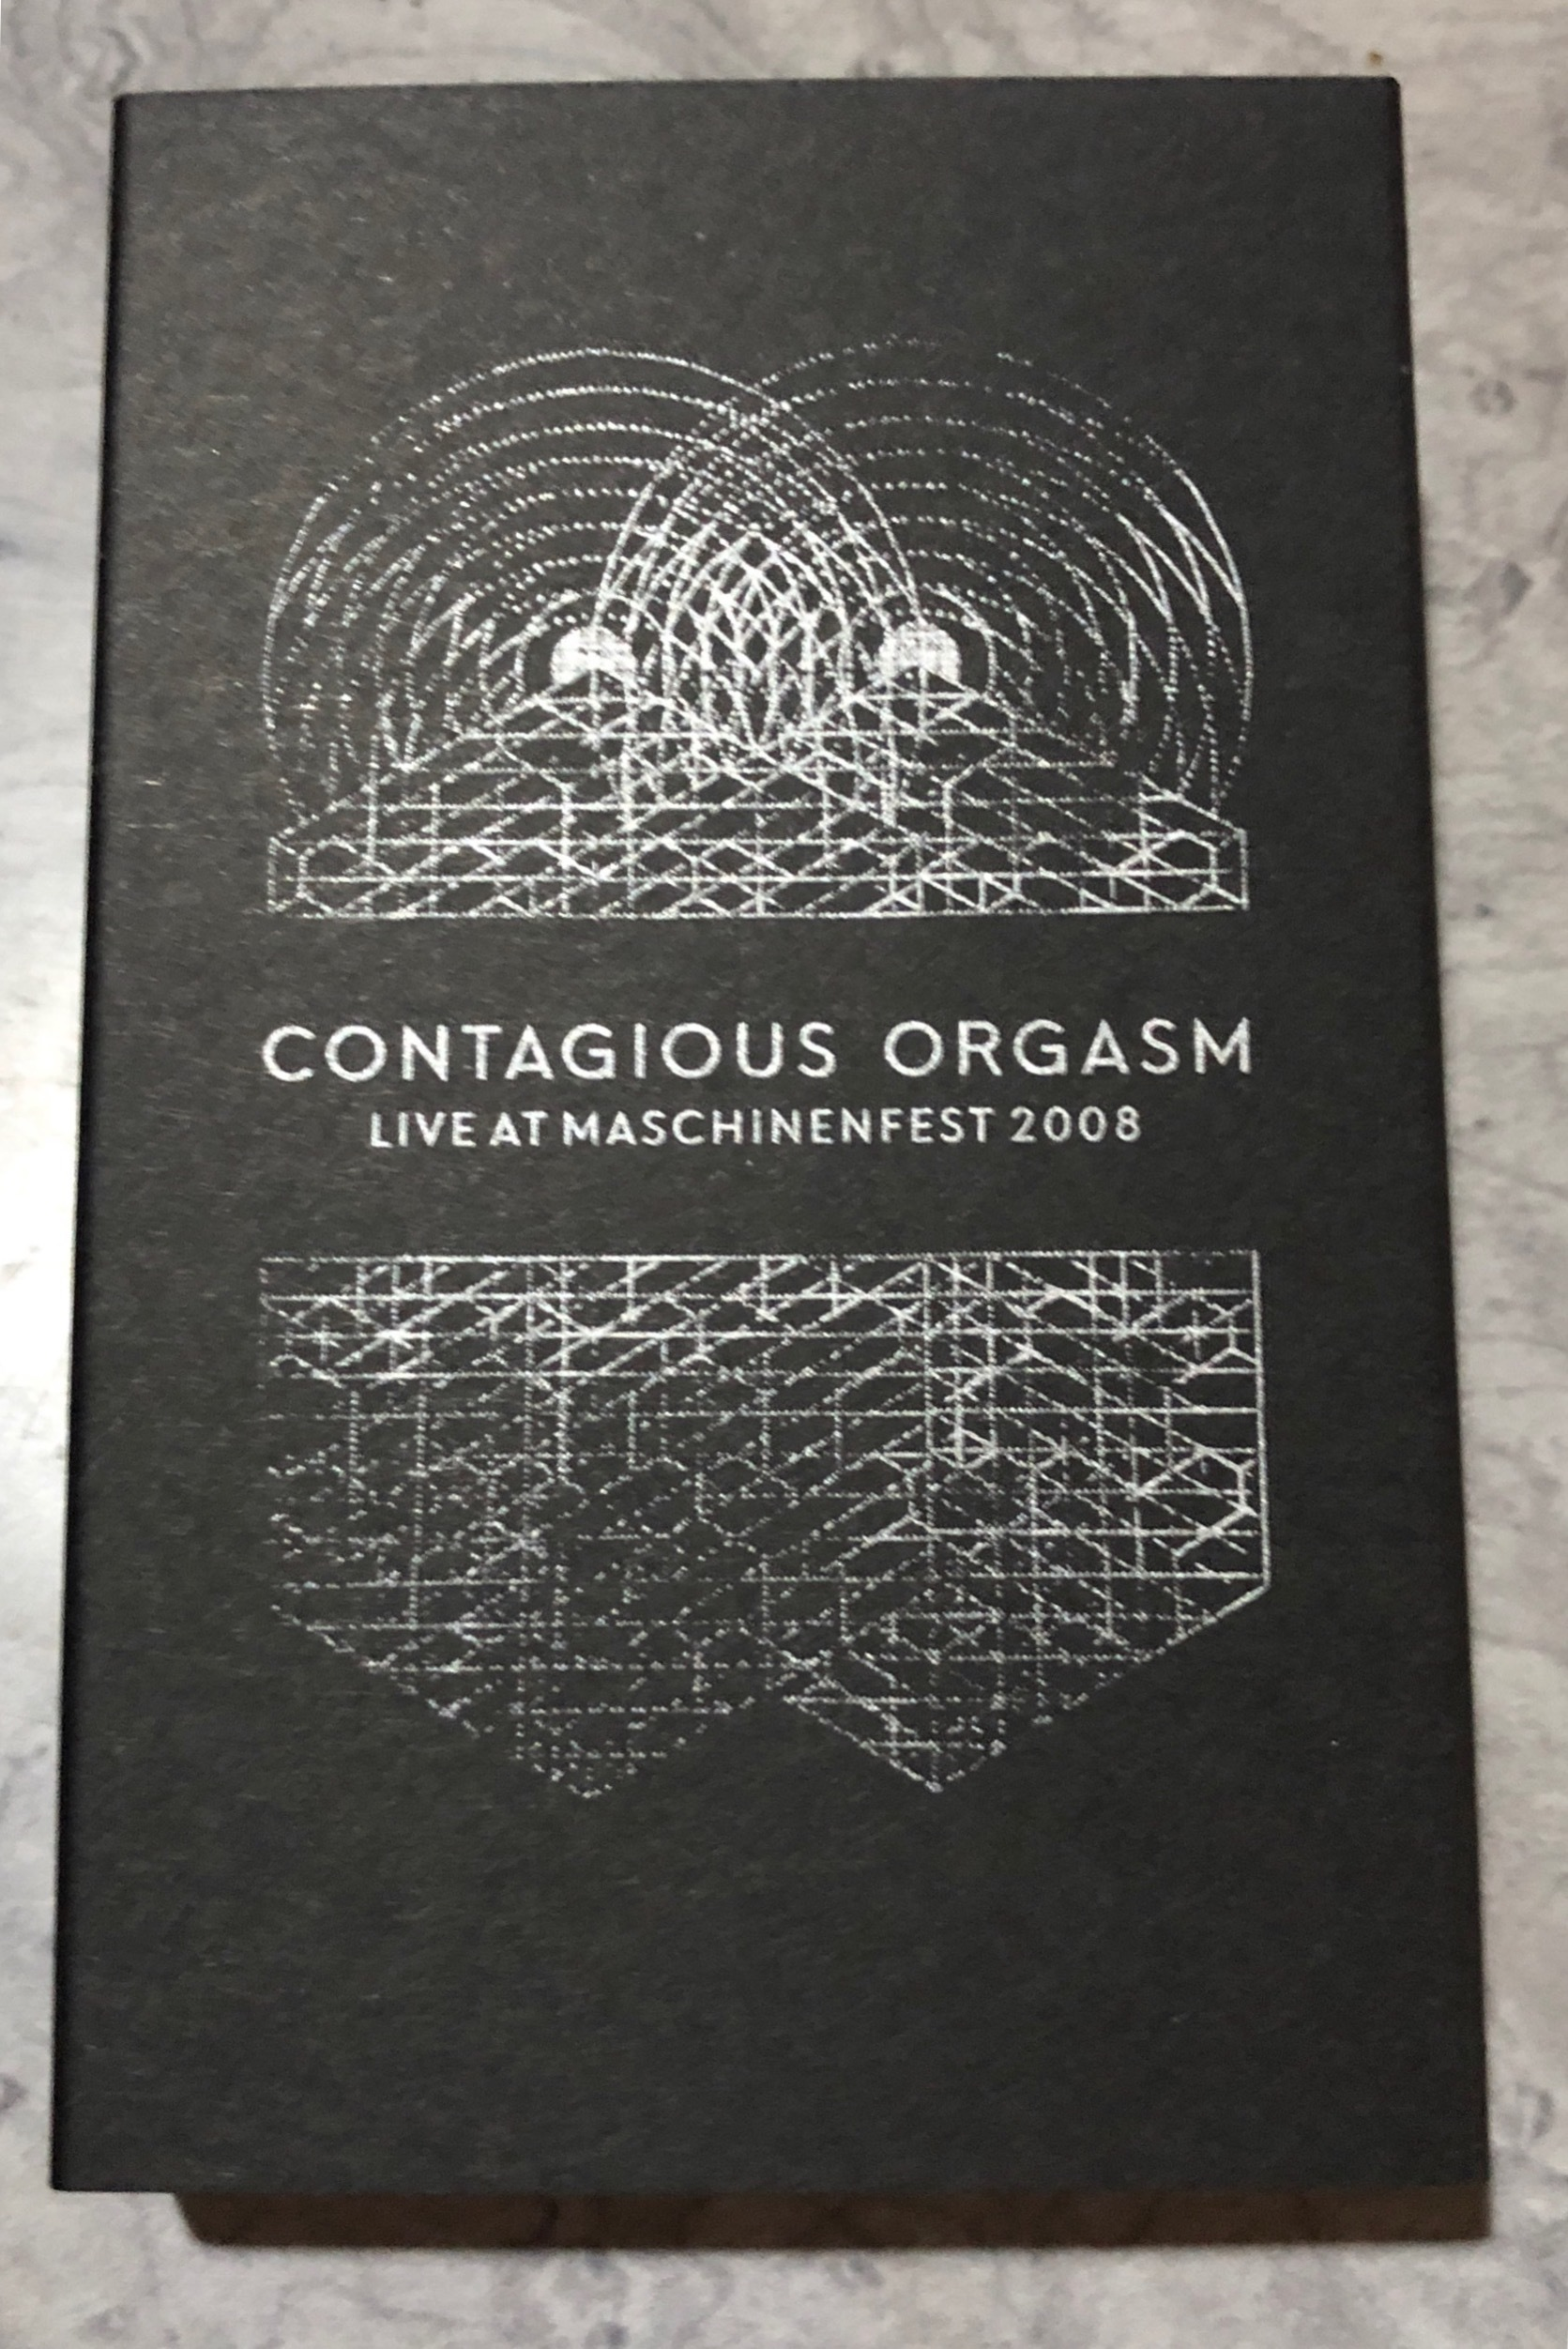 contagious orgasm - live at maschinenfest 2008. tape. - 画像2